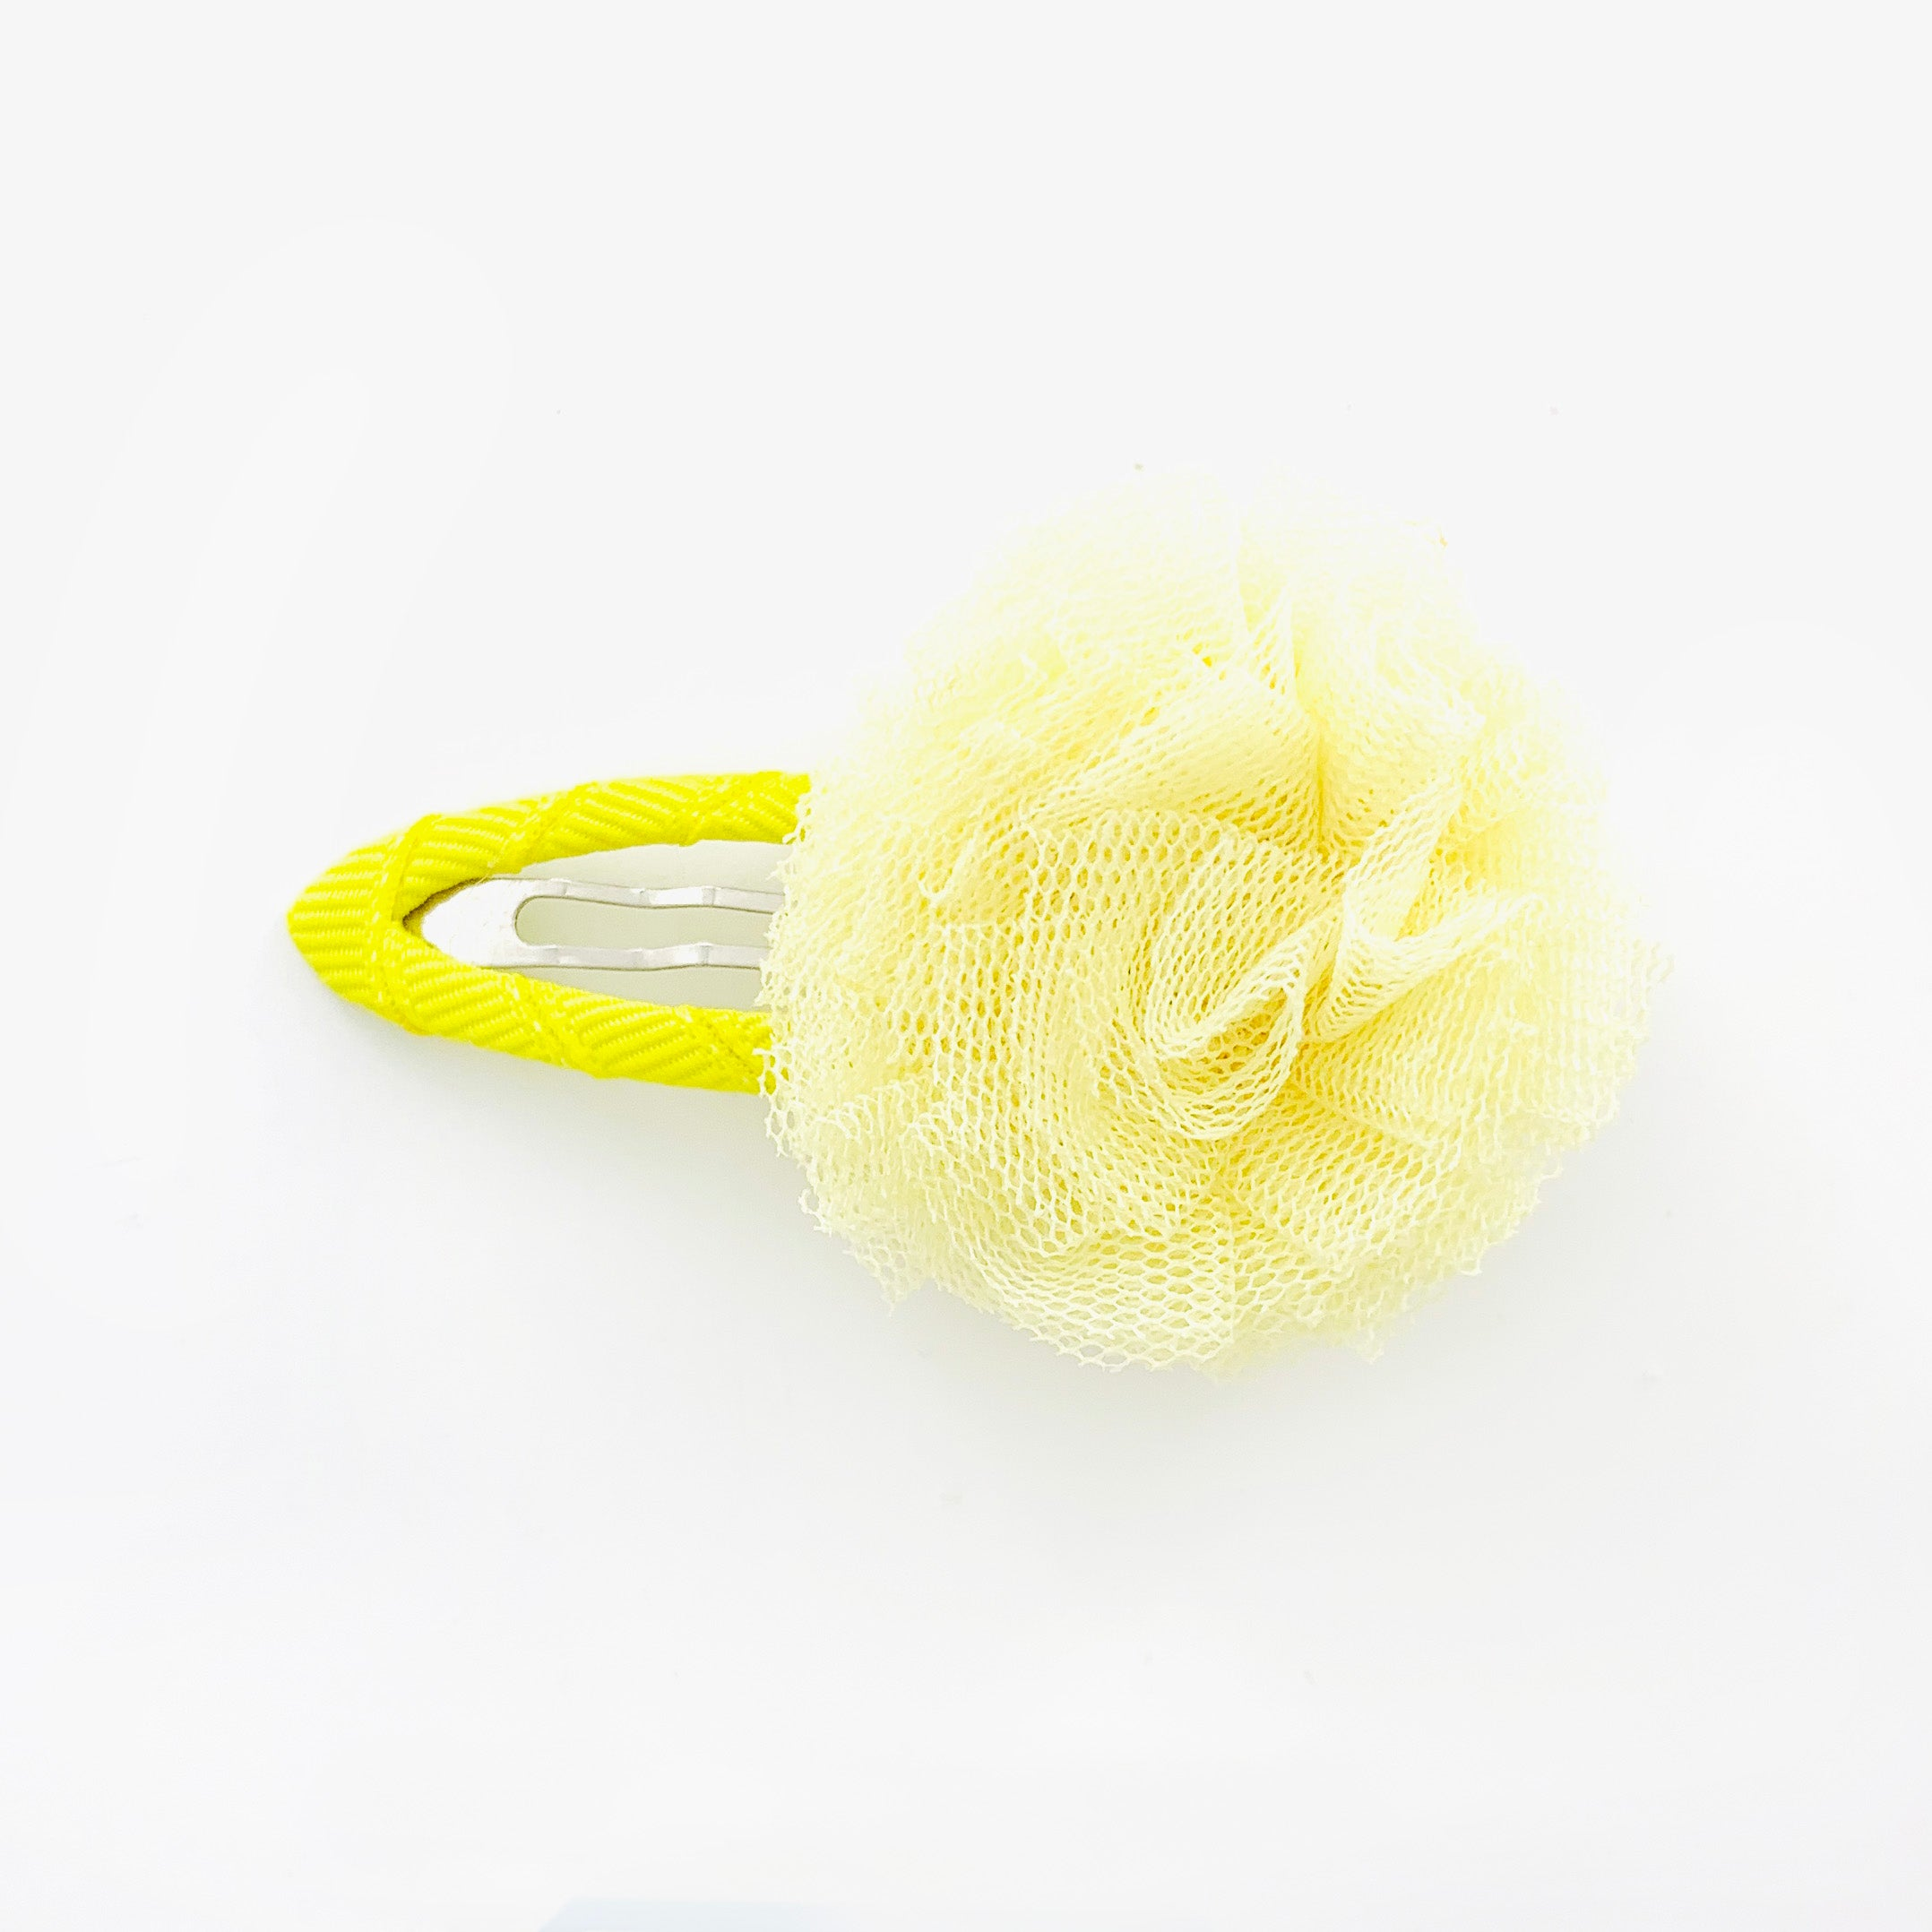 Hair clip with fluffy fabric yellow pom pom